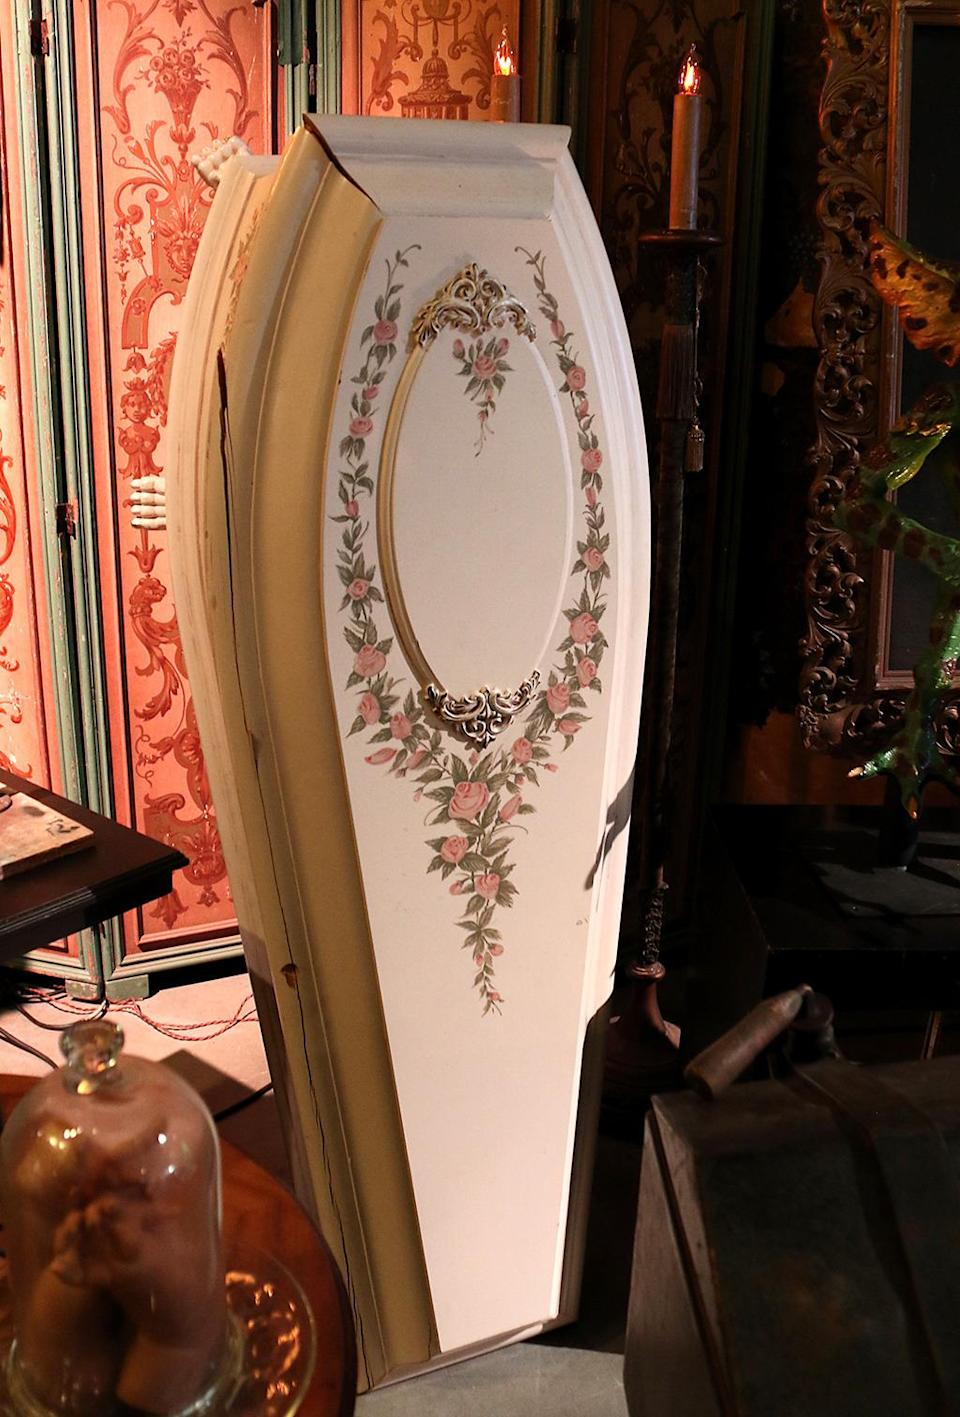 <p>This is the ornate coffin for the young Claudia (Kirsten Dunst) in the vampire film starring Tom Cruise and Brad Pitt. (Photo: Angela Kim/Yahoo) </p>